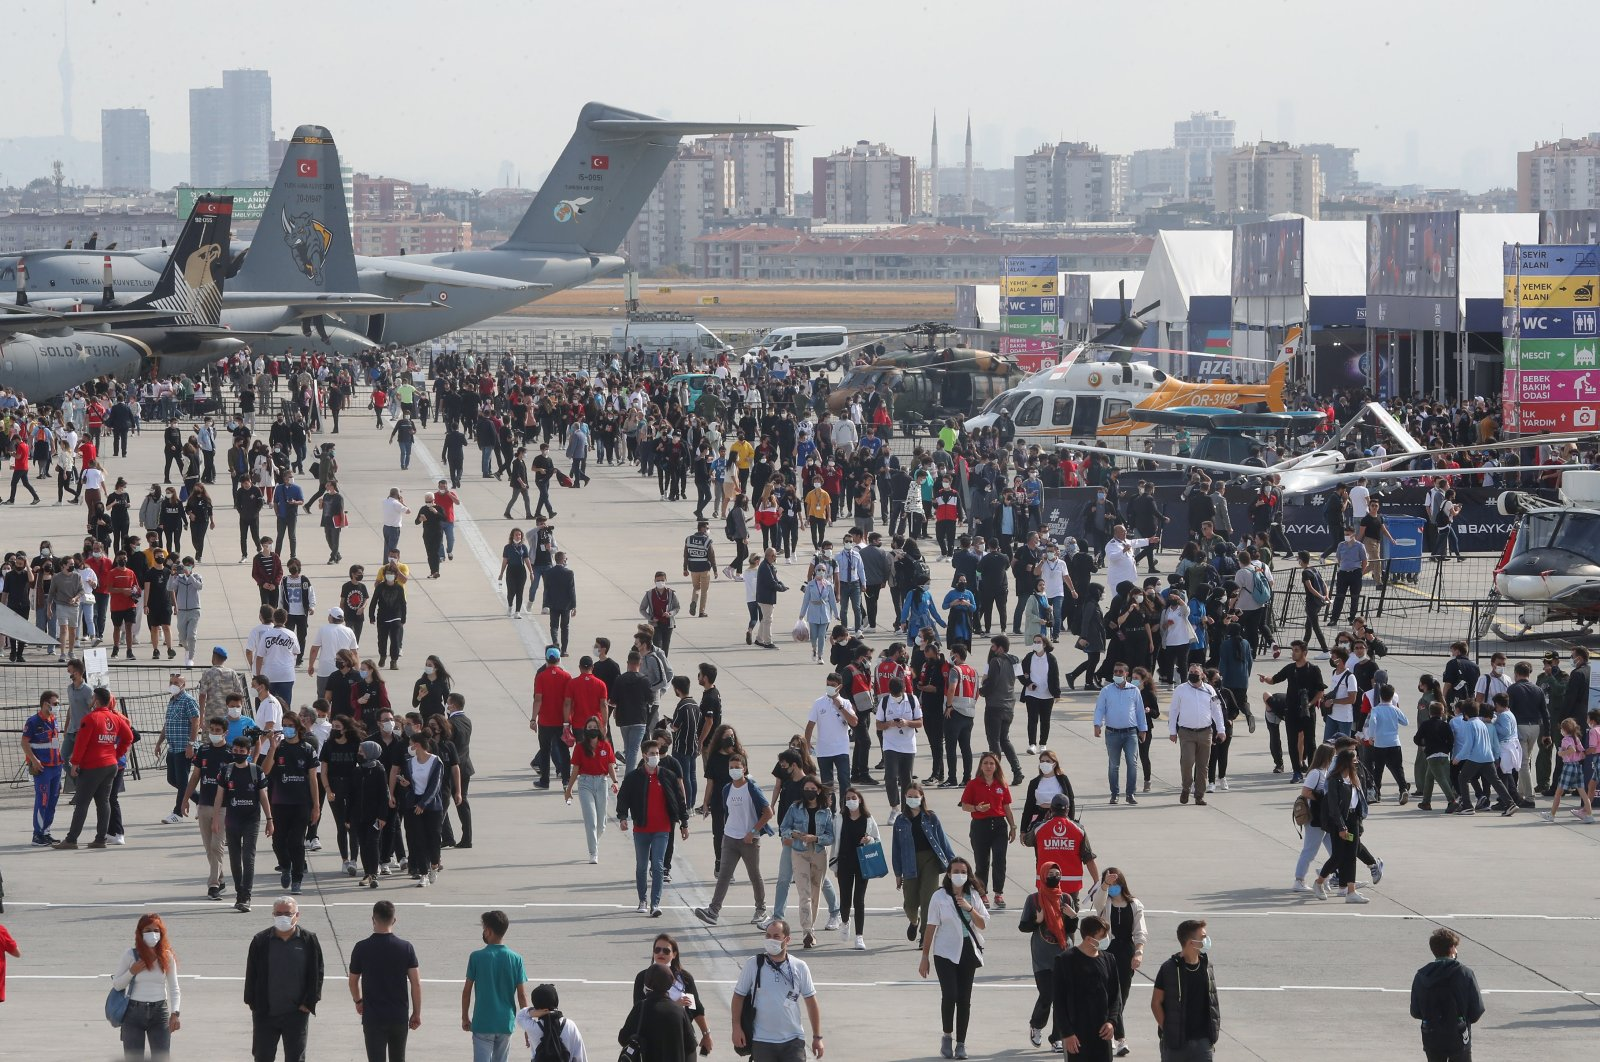 Visitors arrive at Atatürk Airport for the fourth edition of Turkey's largest aerospace and technology event Teknofest, in Istanbul, Turkey, Sept. 21, 2021. (DHA Photo)